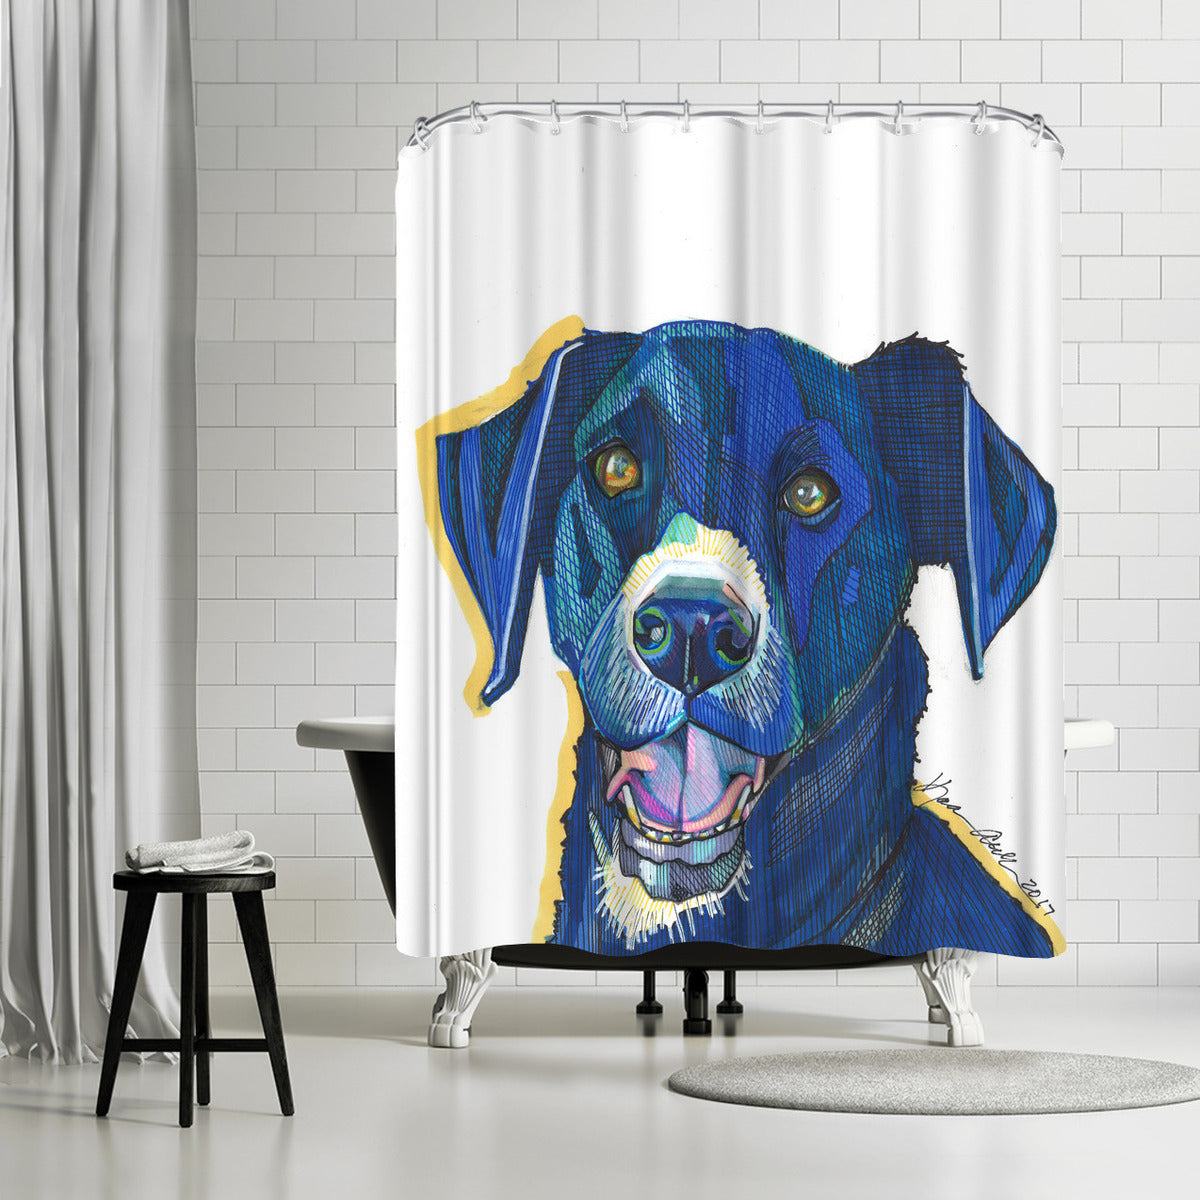 Elissa Werner by Solveig Studio Shower Curtain -  - Americanflat